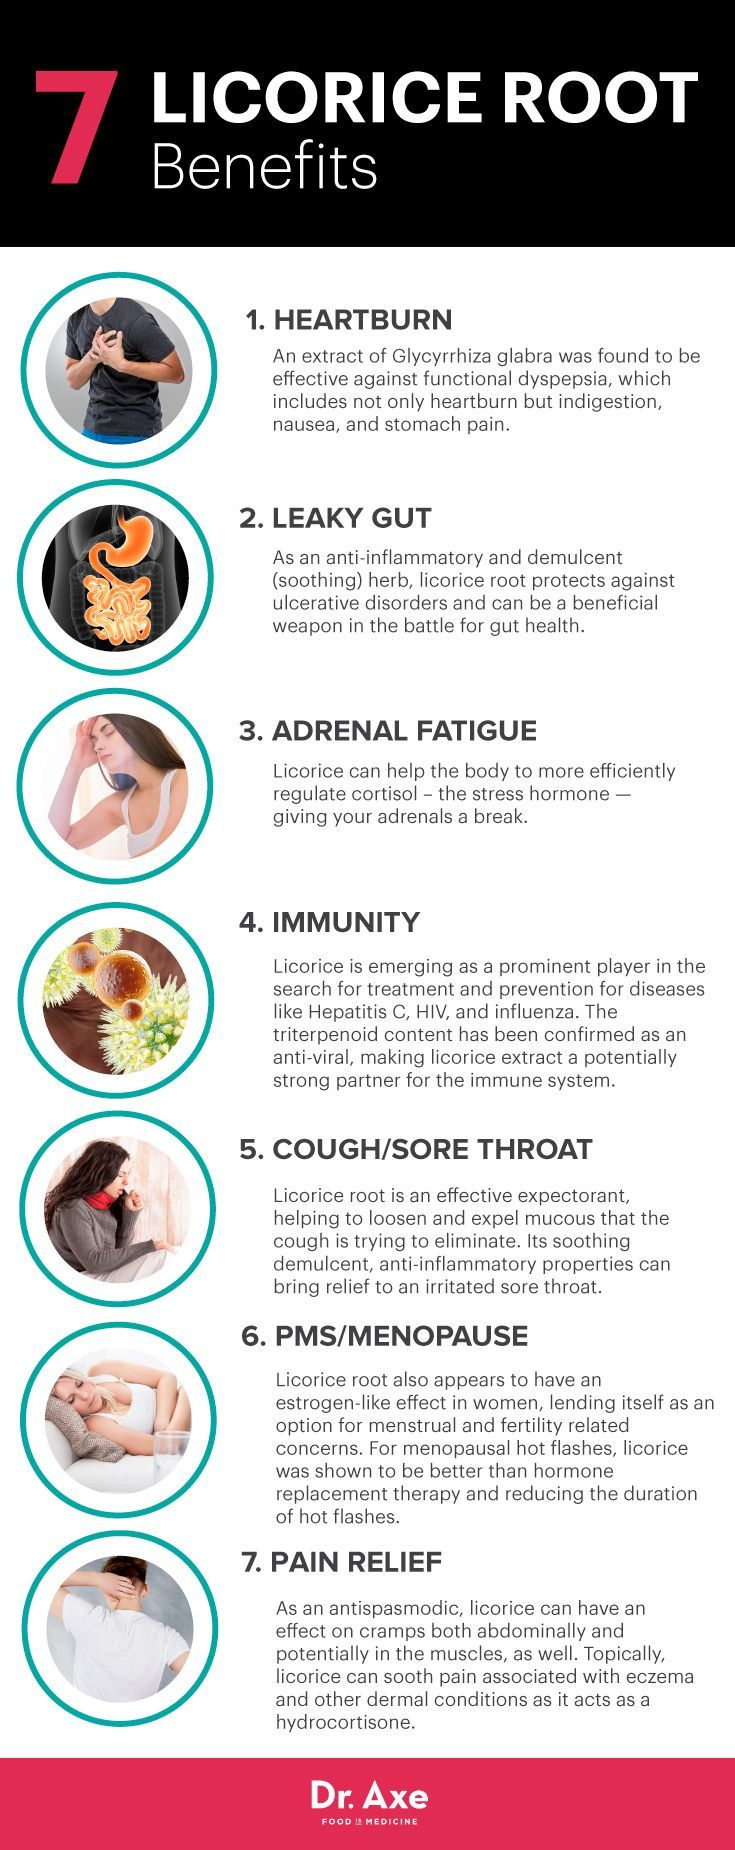 Licorice root benefits - Dr. Axe http://www.draxe.com #health #holistic #natural